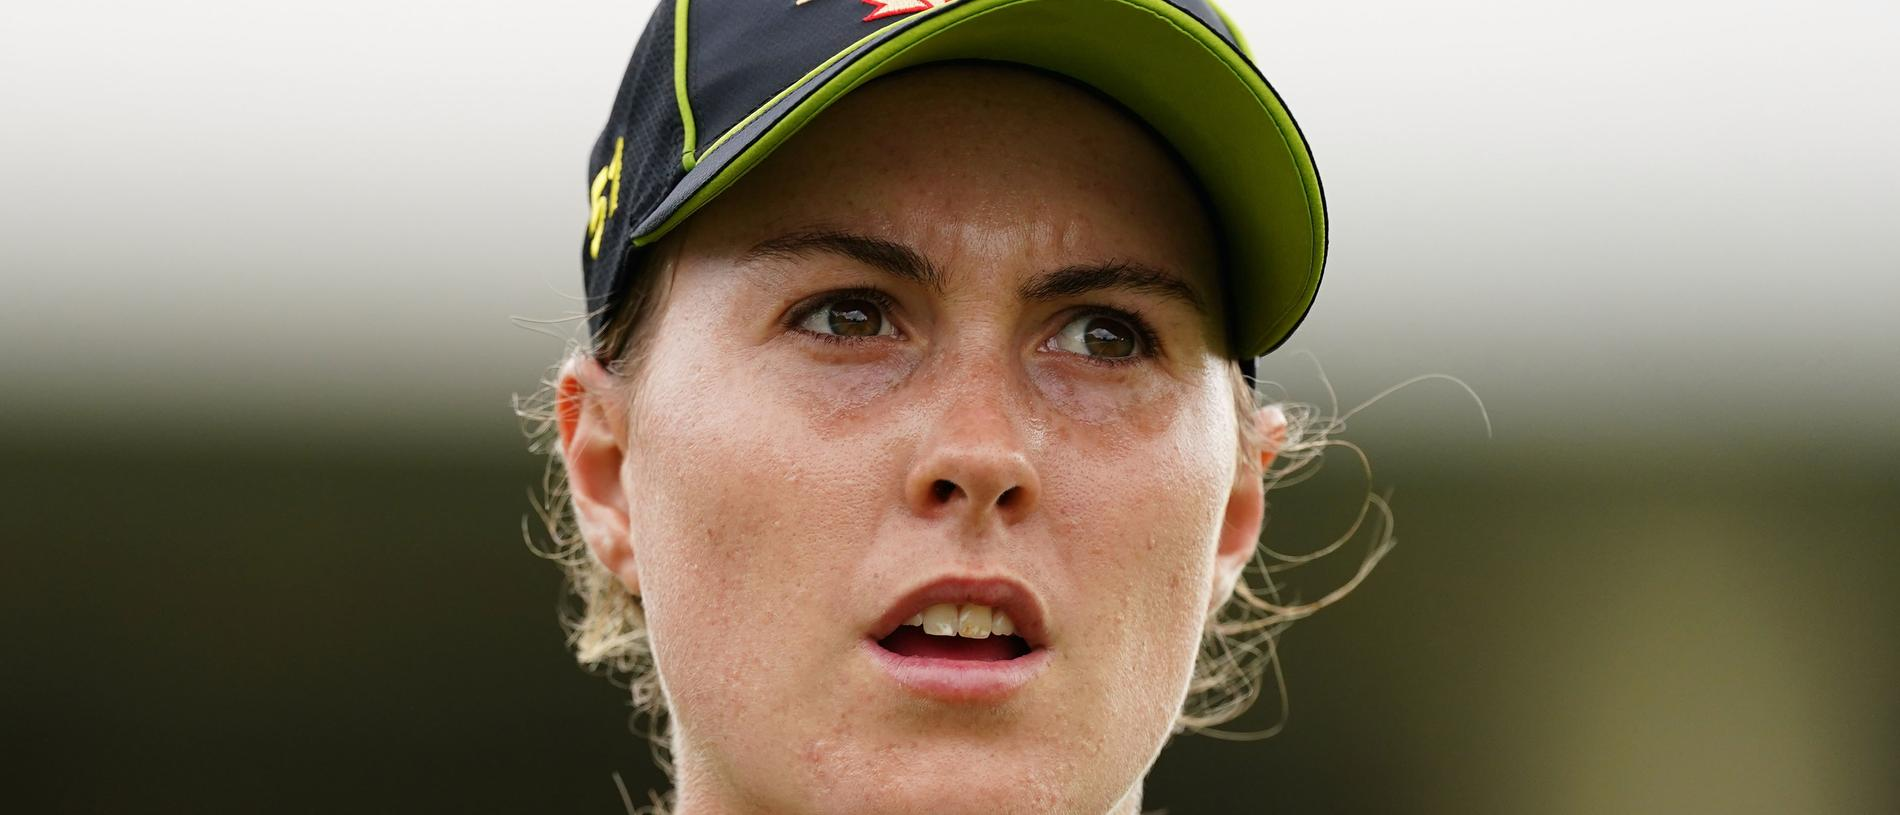 Tayla Vlaeminck of Australia looks on during the T20I Tri-Series Final cricket match between Australia and India at Junction Oval in Melbourne, Wednesday, February 12, 2020. (AAP Image/Scott Barbour) NO ARCHIVING, EDITORIAL USE ONLY